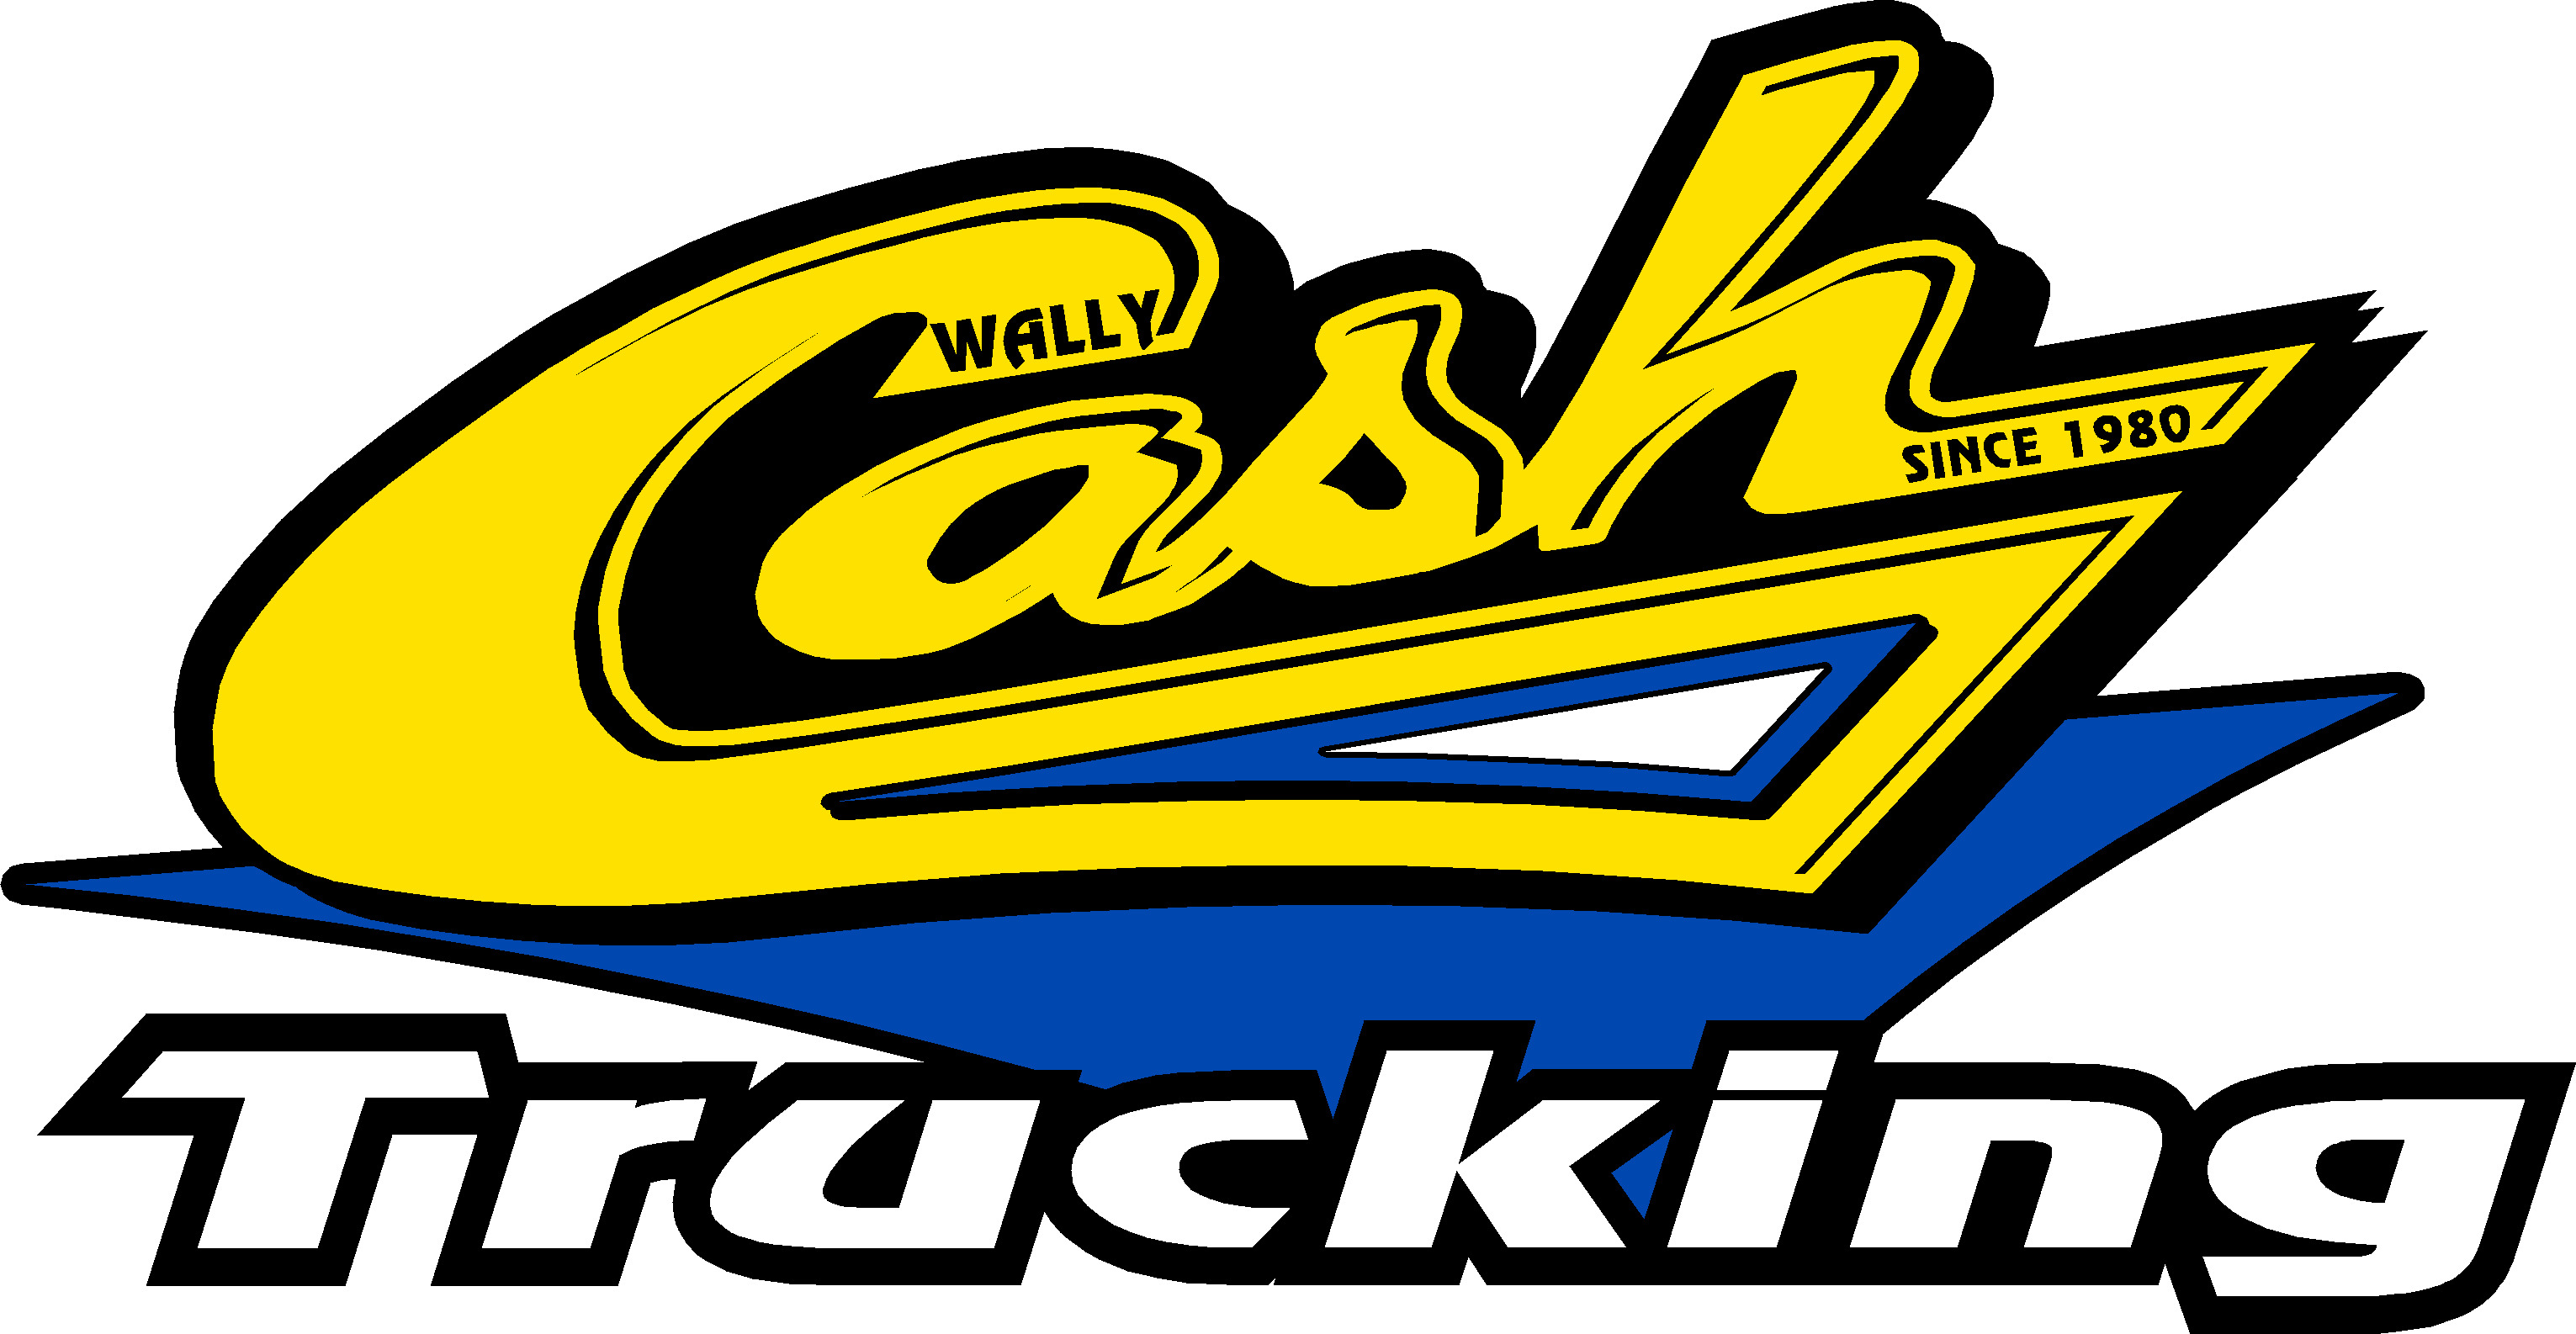 OTR Drivers HOME WEEKLY No Touch Freight - Minneapolis, MN - Wally Cash Trucking, Inc.